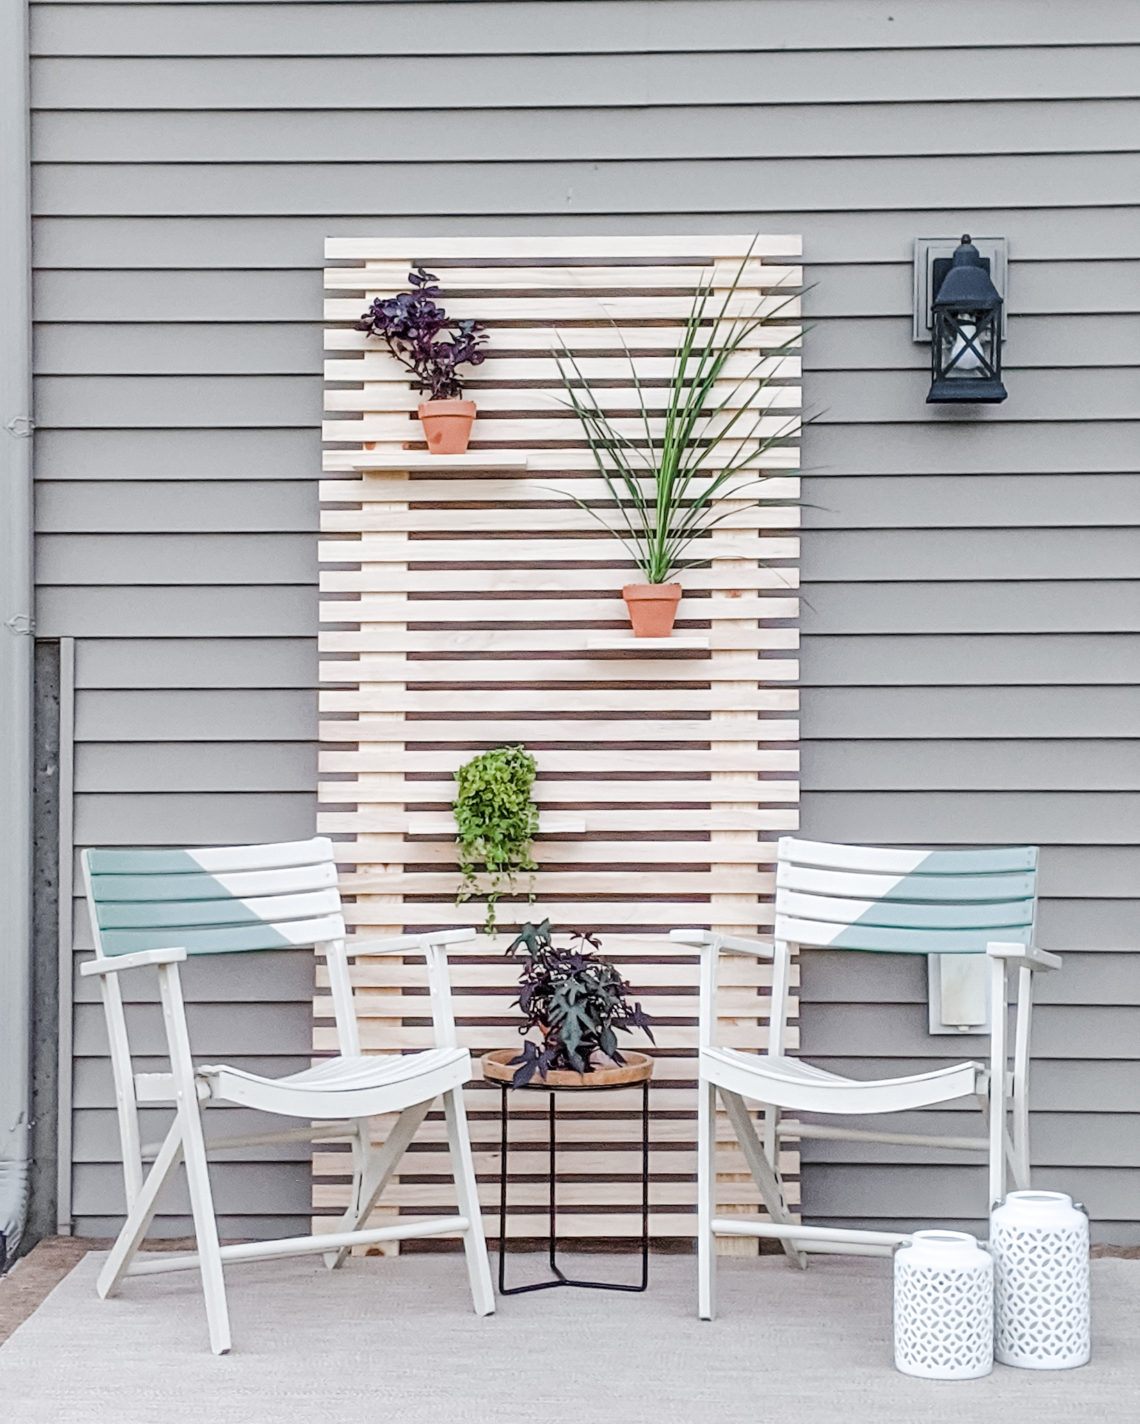 Outdoor Patio Makeover with Painted Chairs and Wood Slat Plant Wall